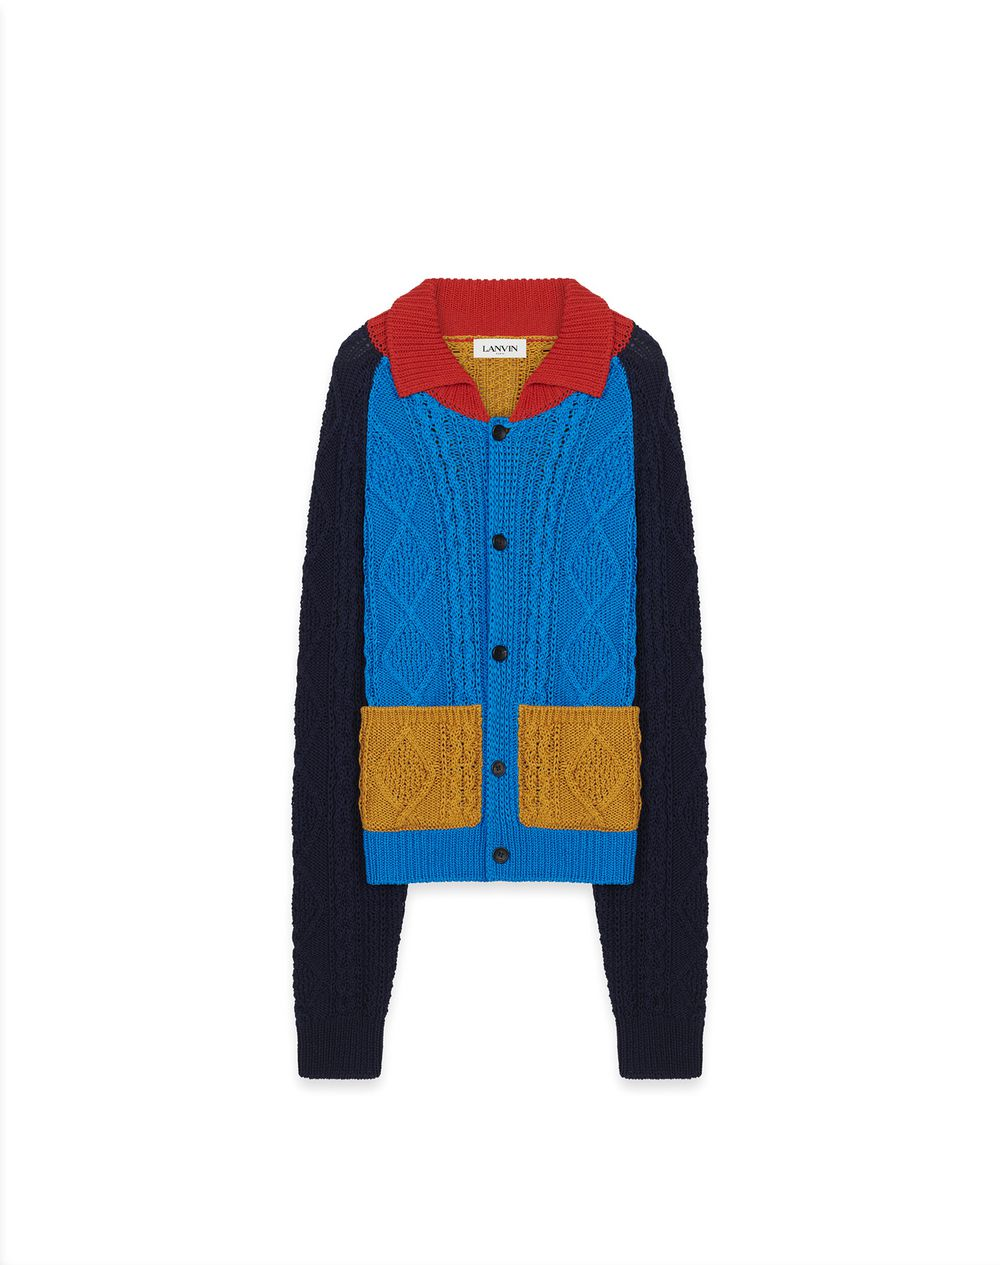 COTTON CABLE-KNIT CARDIGAN - Lanvin